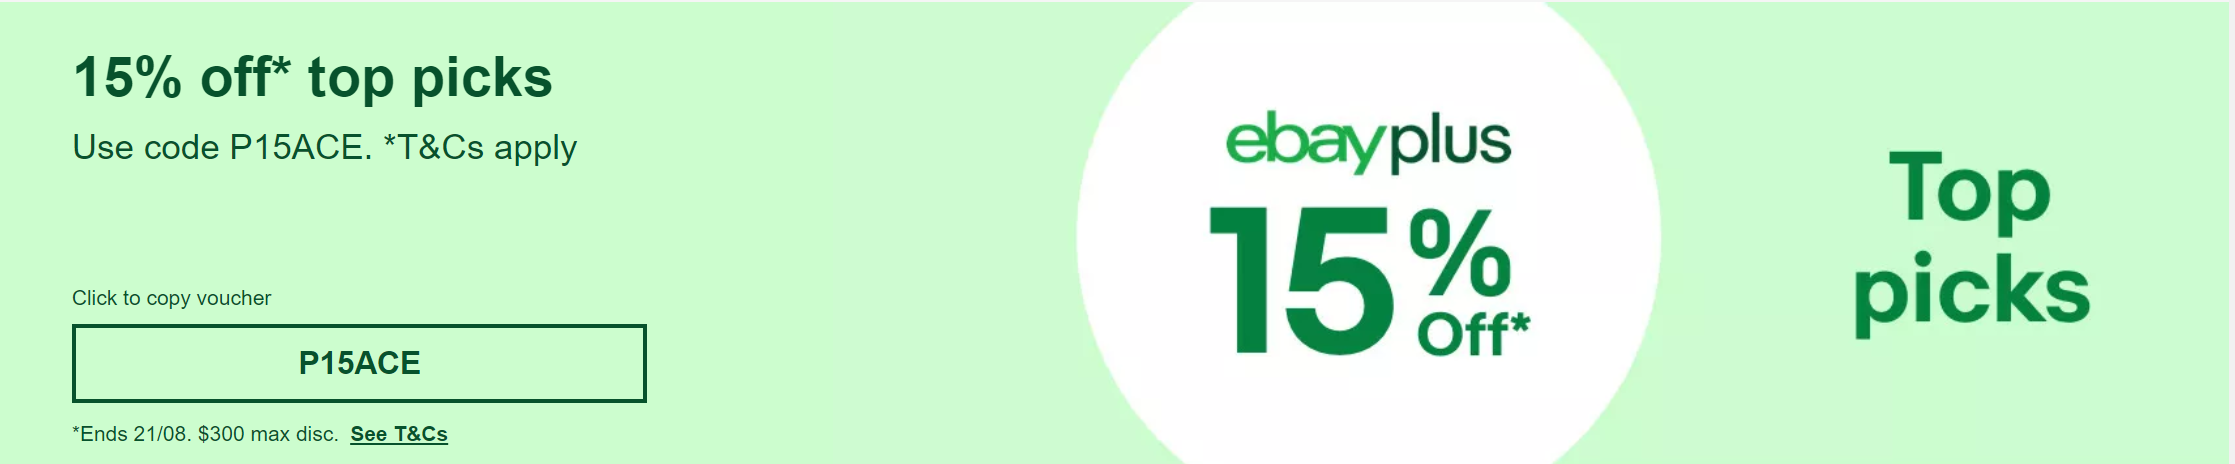 [eBay Plus] 15% off Eligible Items (Max Discount $300)